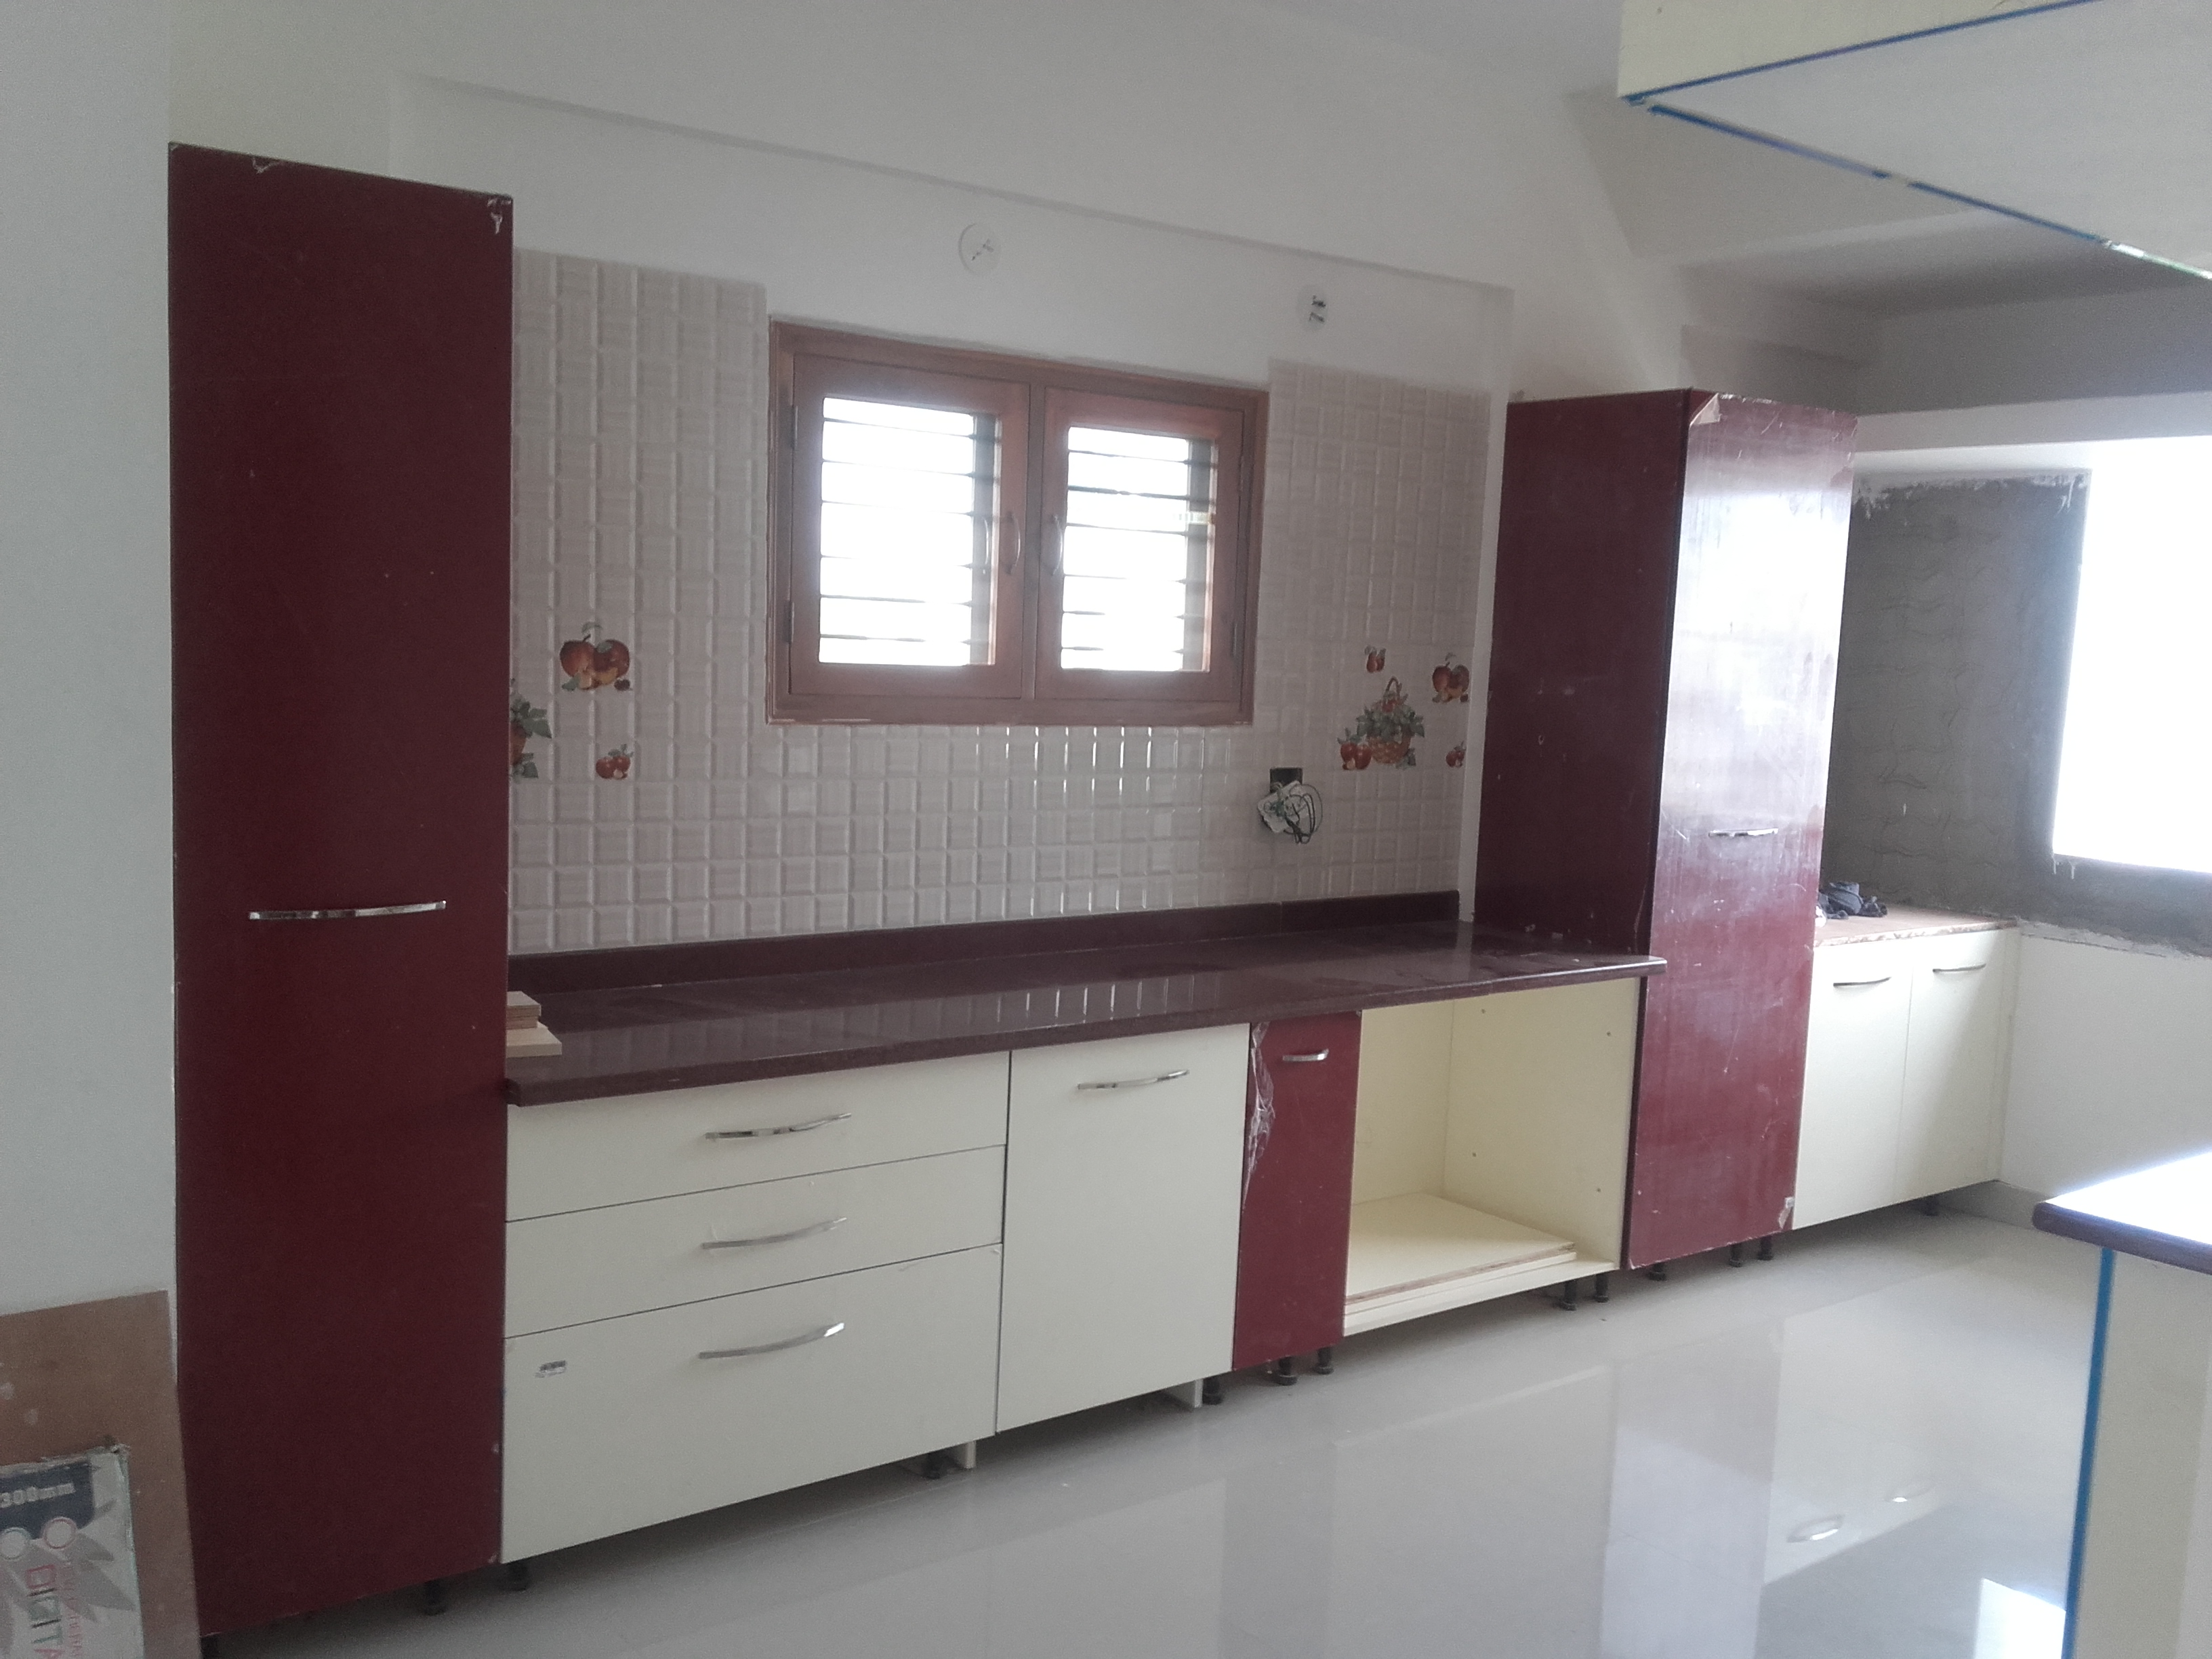 Triad Interio, MODULAR KITCHEN MANUFACTURES IN HYDERABAD   #MODULAR KITCHEN MANUFACTURES IN GACHIBOWLI   #MODULAR KITCHEN MANUFACTURES IN MANIKONDA   #MODULAR KITCHEN MANUFACTURES IN KOKAPETA   #MODULAR KITCHEN MANU